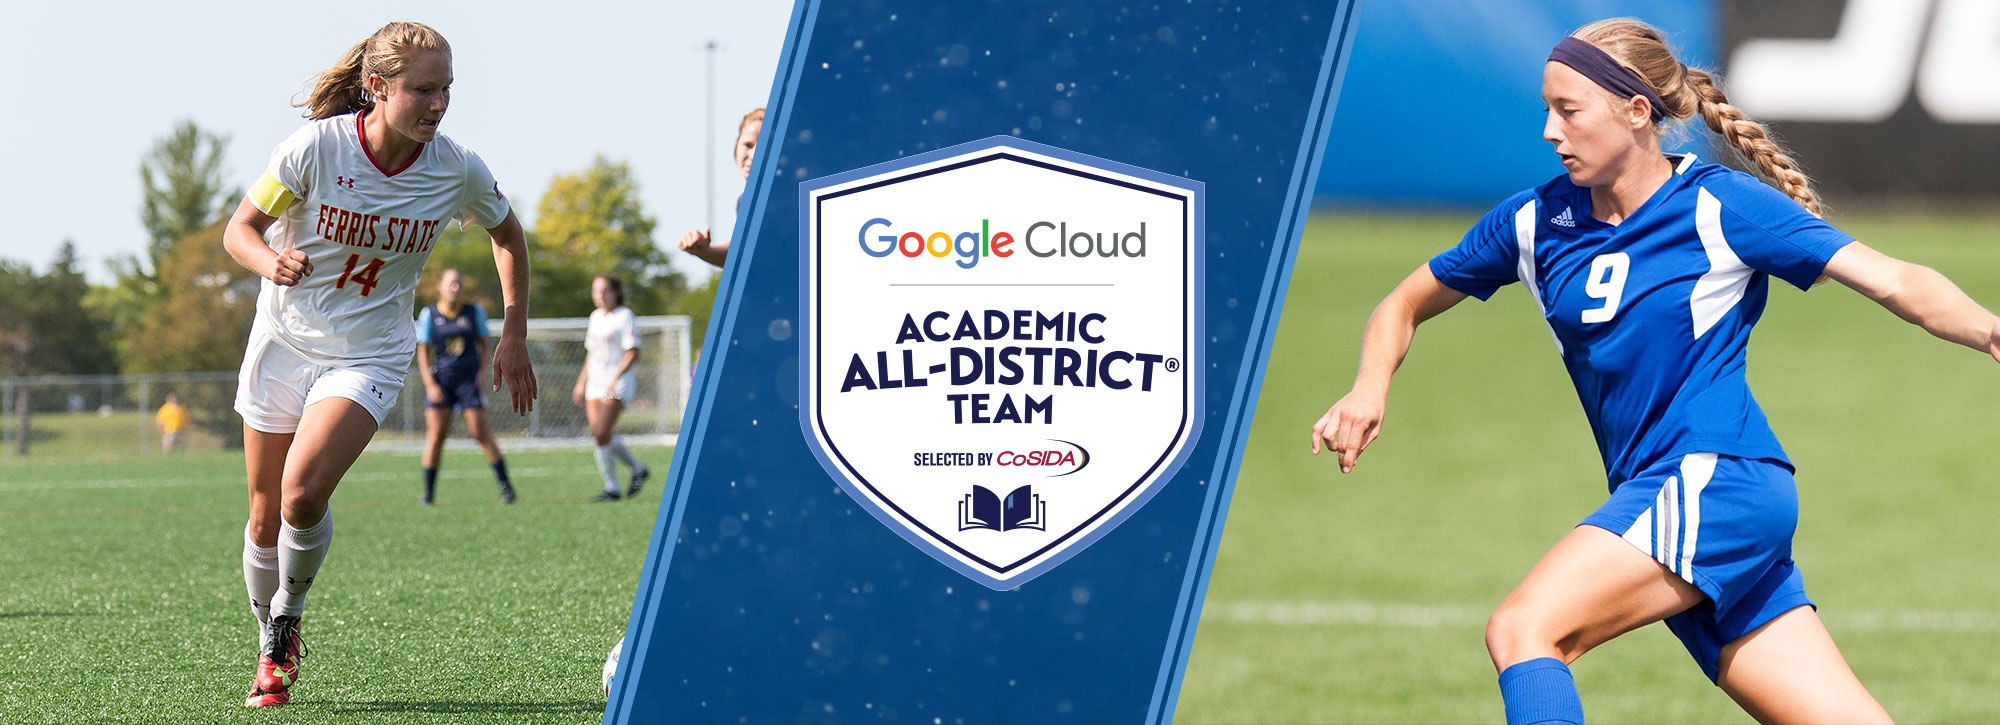 Ferris State's Dubbert, Grand Valley State's Ham Honored Google Cloud Academic All-District